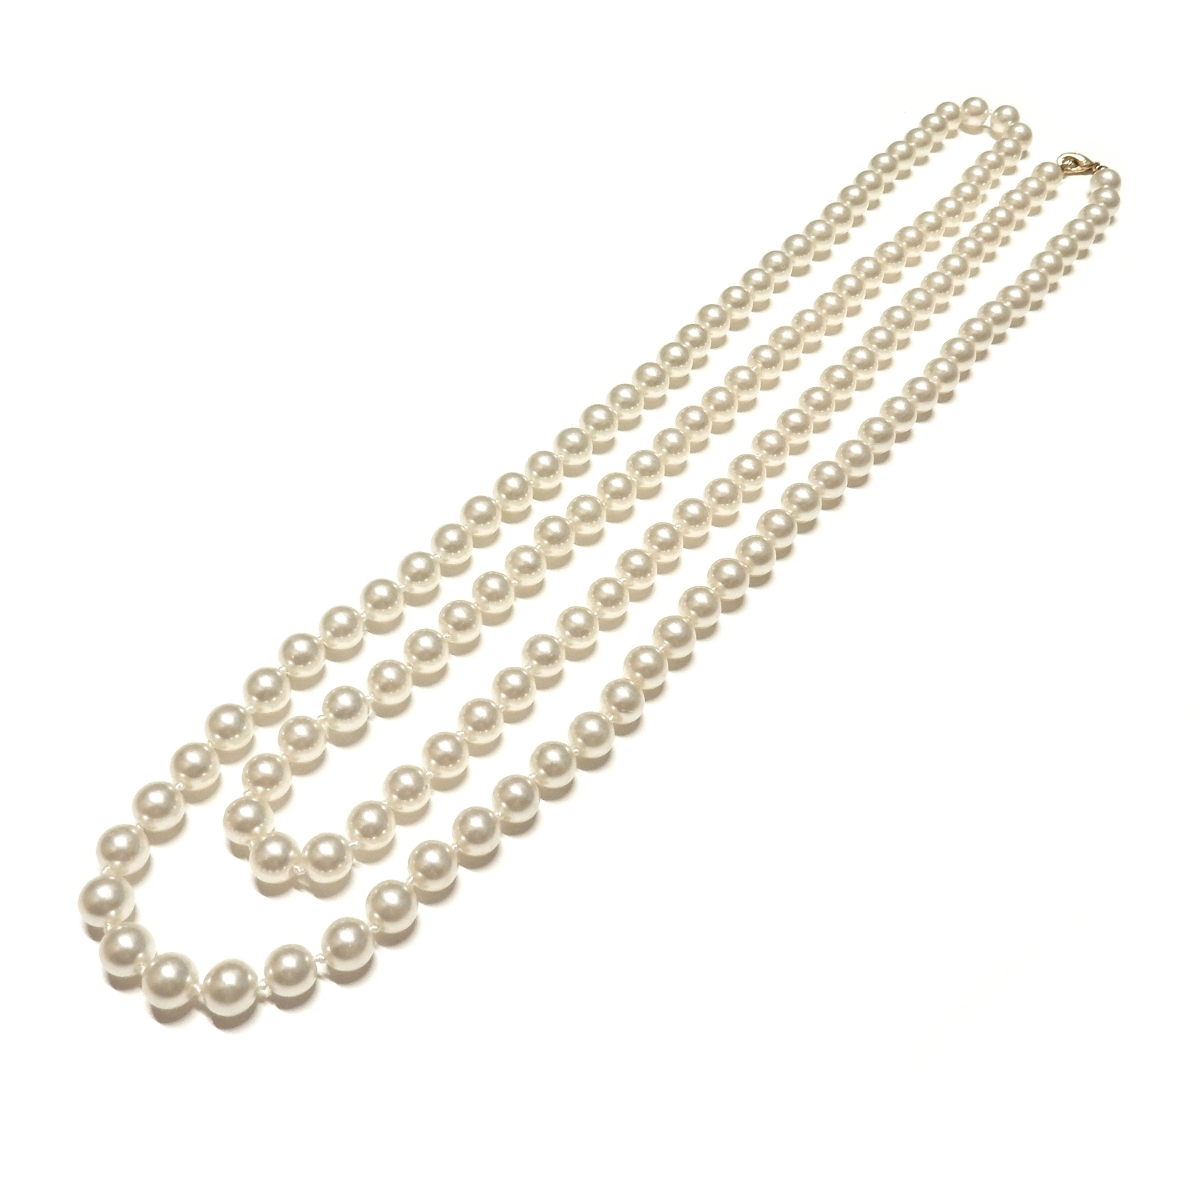 8mm Glass Pearl Necklace - Light Cream Colour